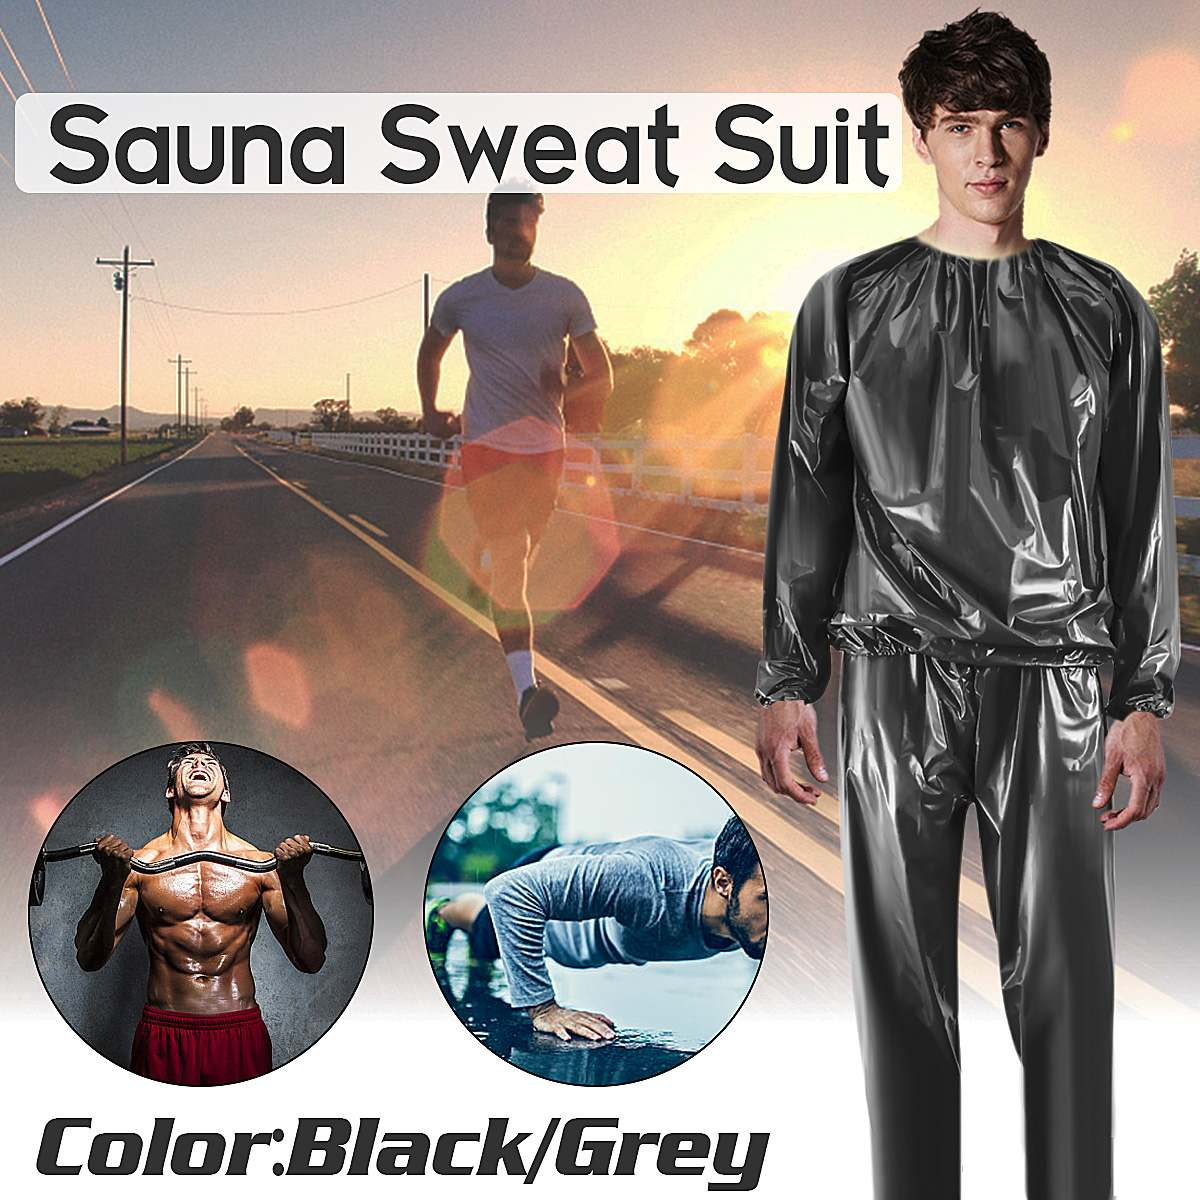 Heavy Duty Fitness Weight Loss Sweat Sauna Suit PVC Full Body Sauna Suit Exercise Gym Anti-Rip For Women Men